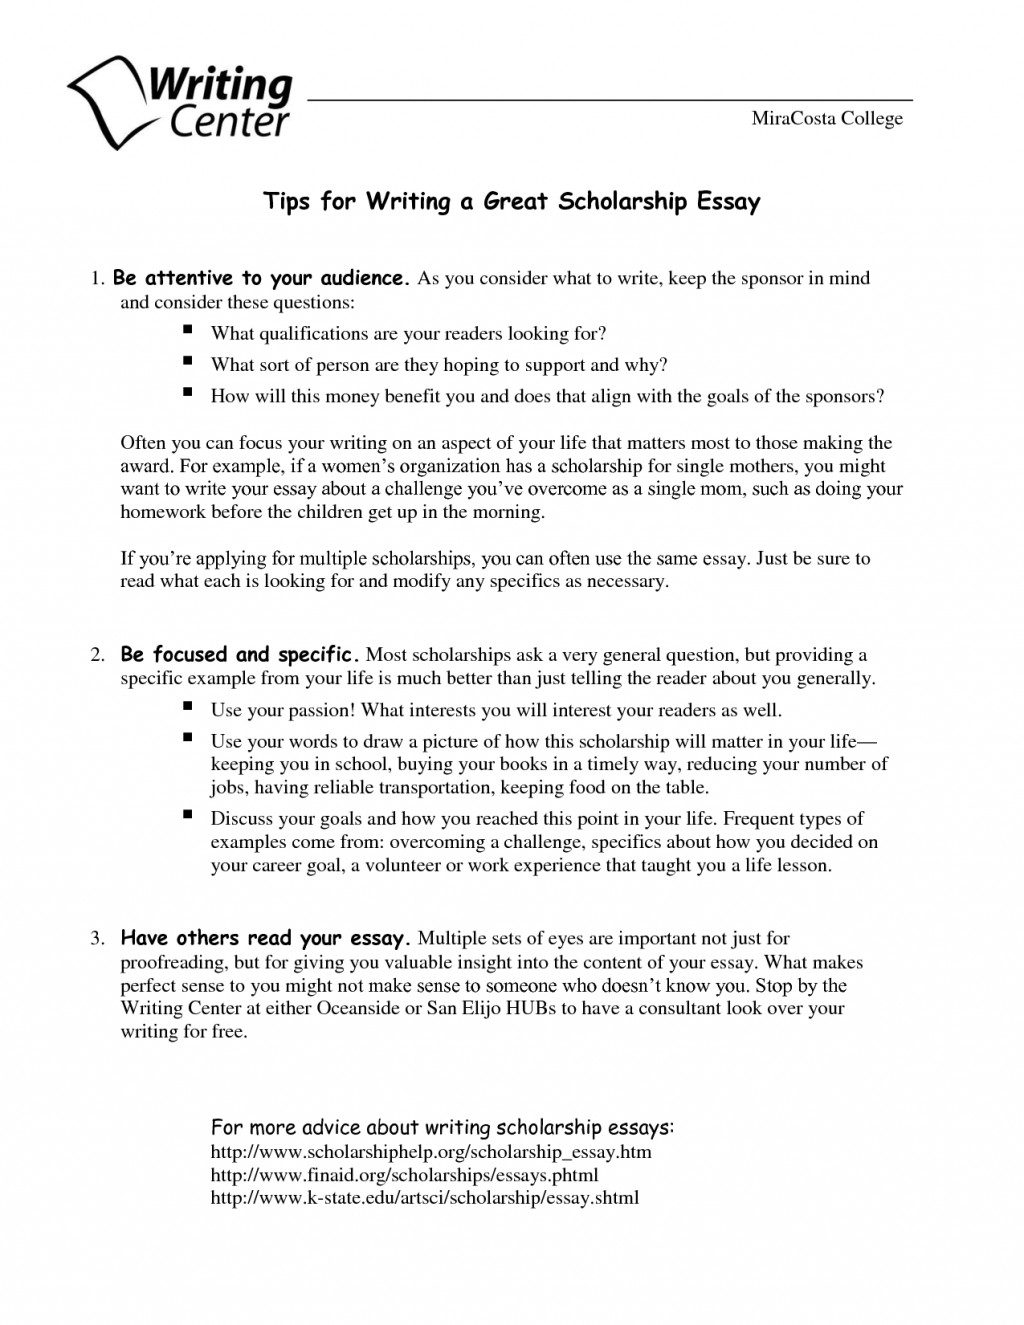 019 Application Essay Example Structure Format Free Letter Templates Online Jagsa Us Sample Scholarship Engineering N8cud Nursing Mba Excellent Apply Texas Prompts 2019 College Help Guidelines Large